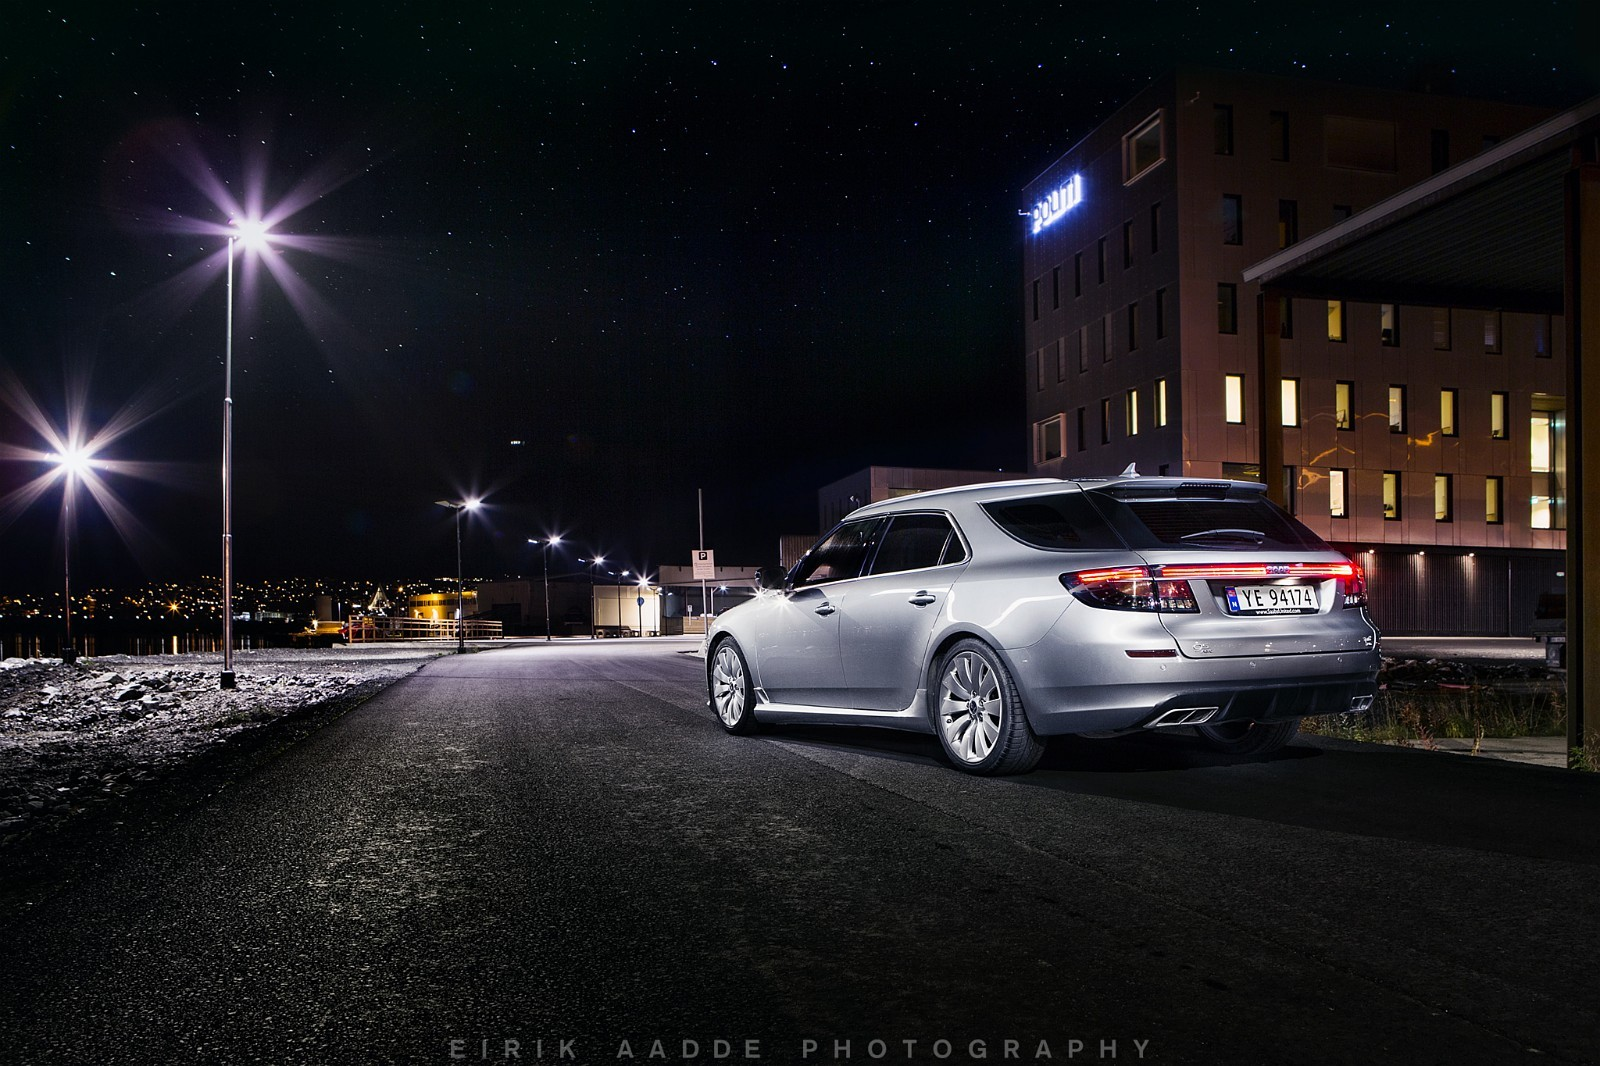 Find The Original Listing With Details Here Saab 9 5 20 TTiD4 XWD SportCombi Aero 2012